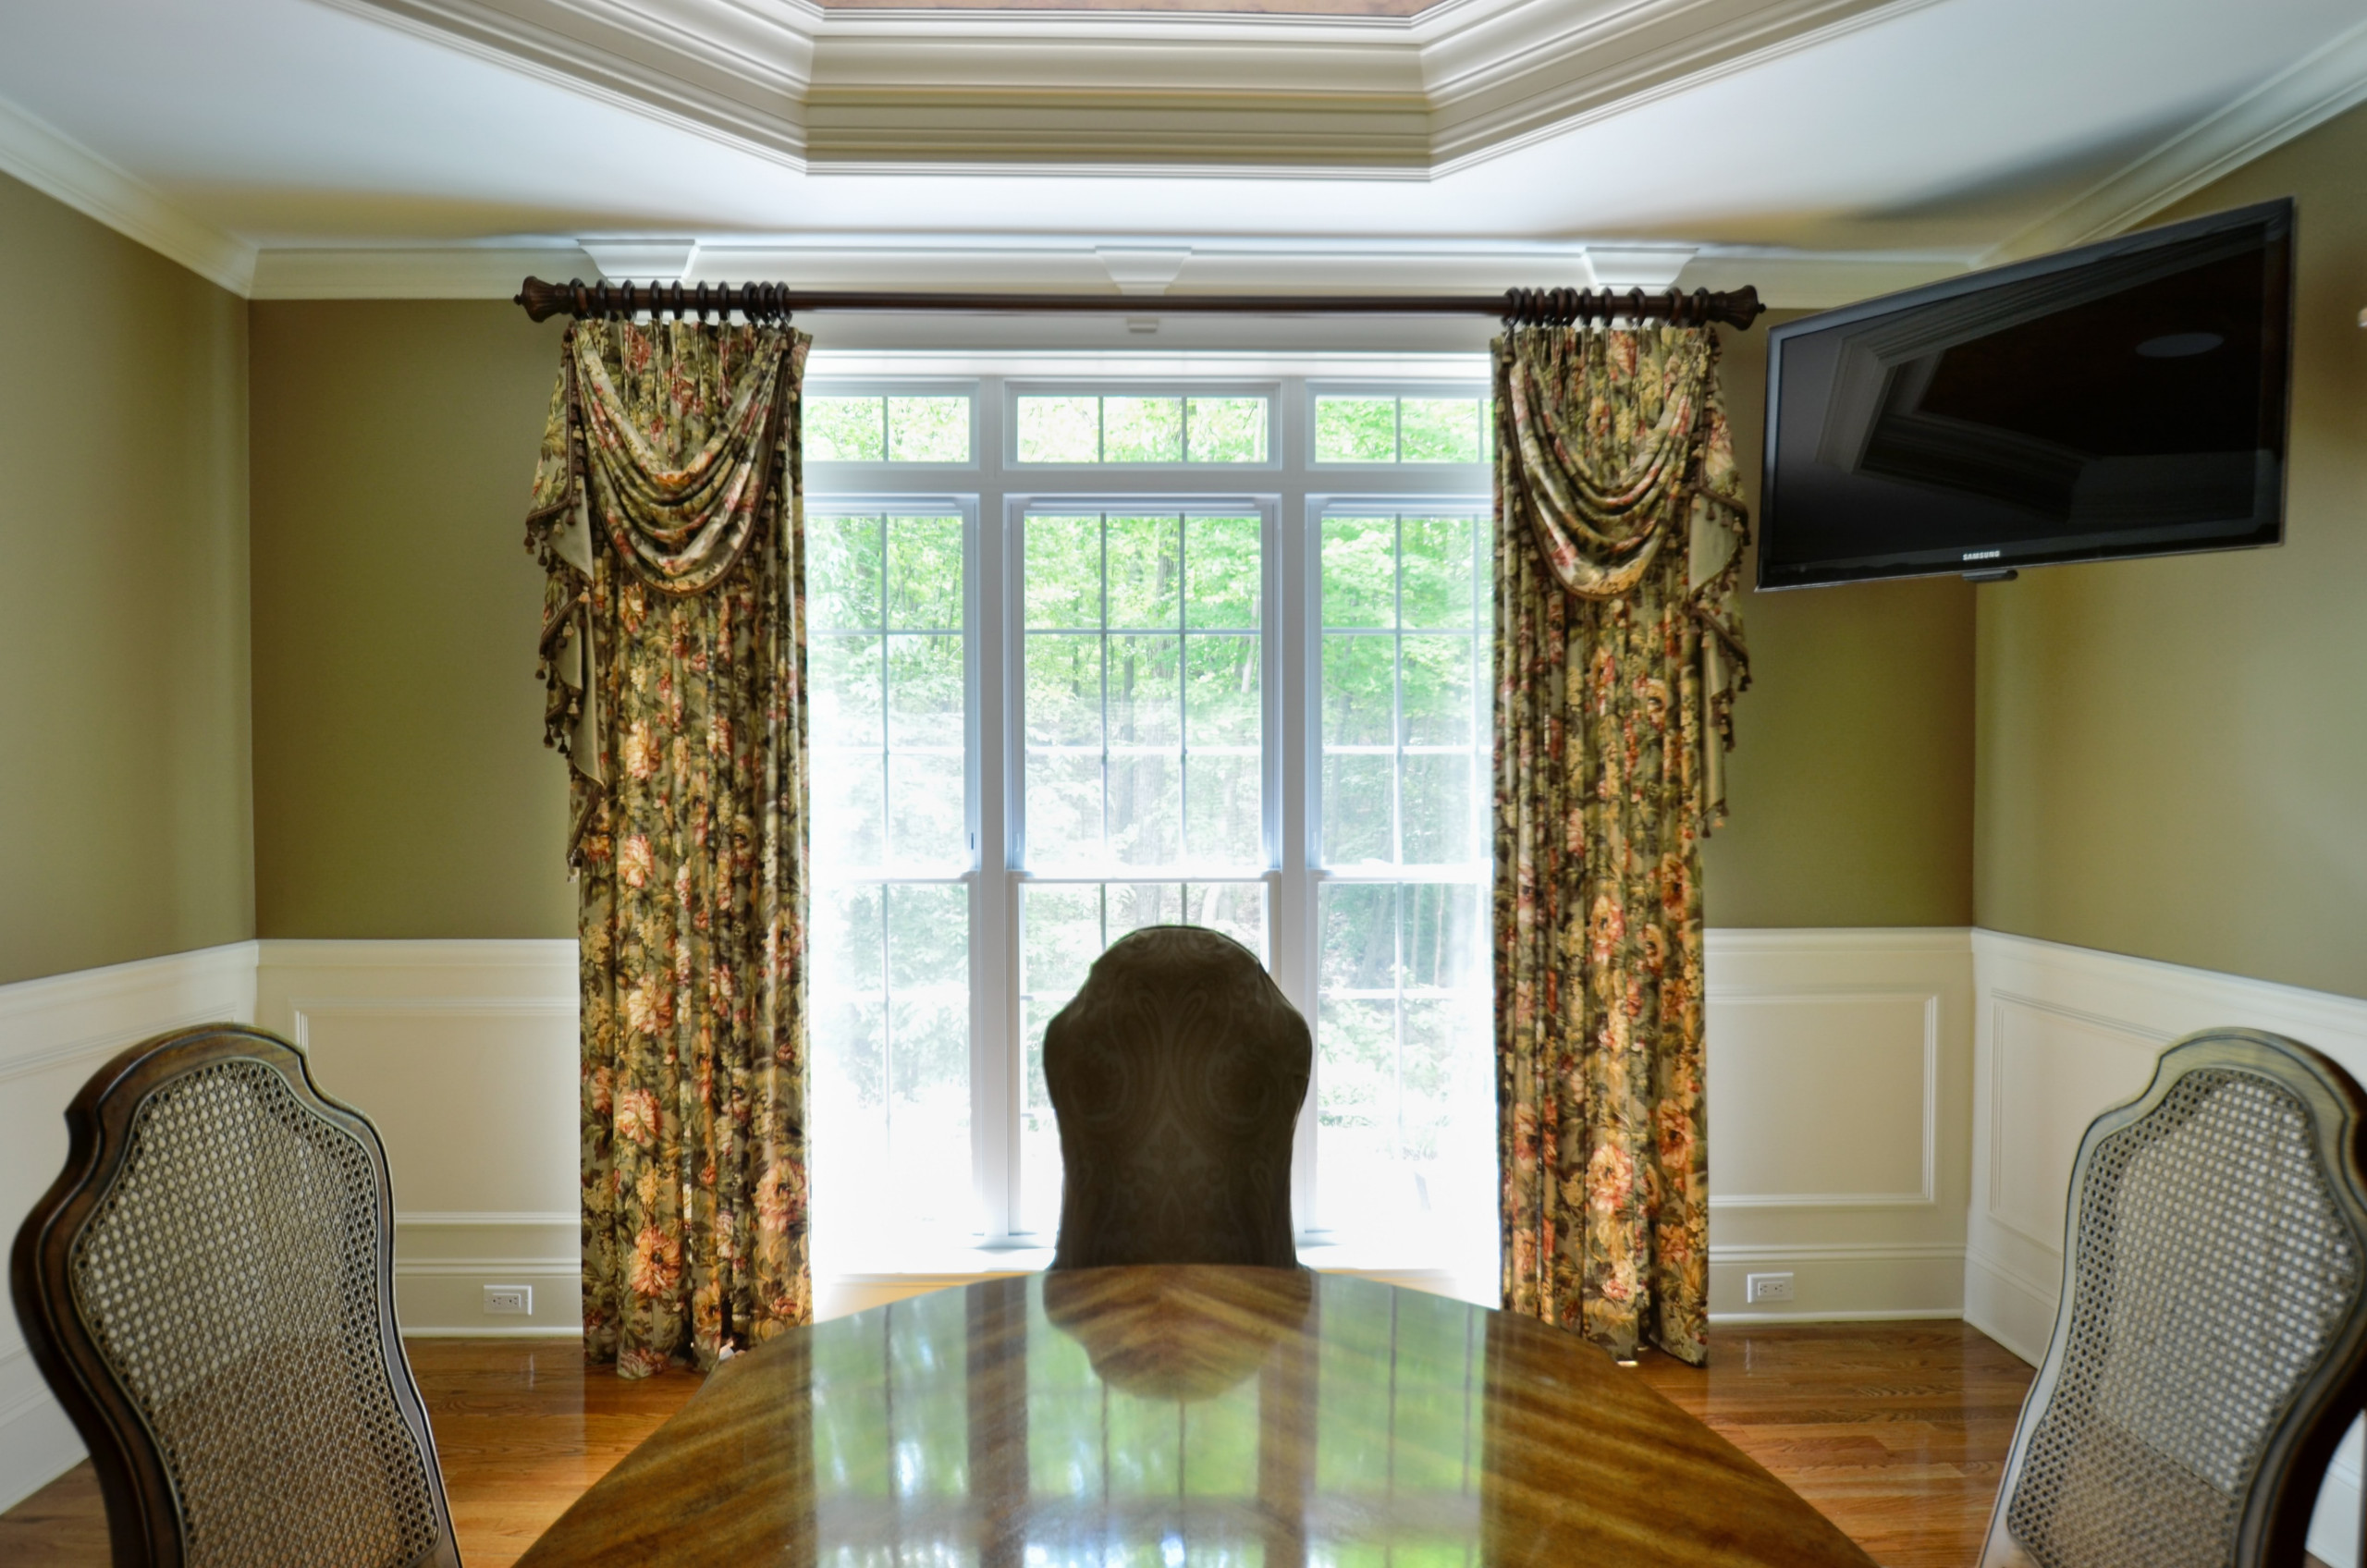 Dining Room Window with Panels, Swags and Jabots